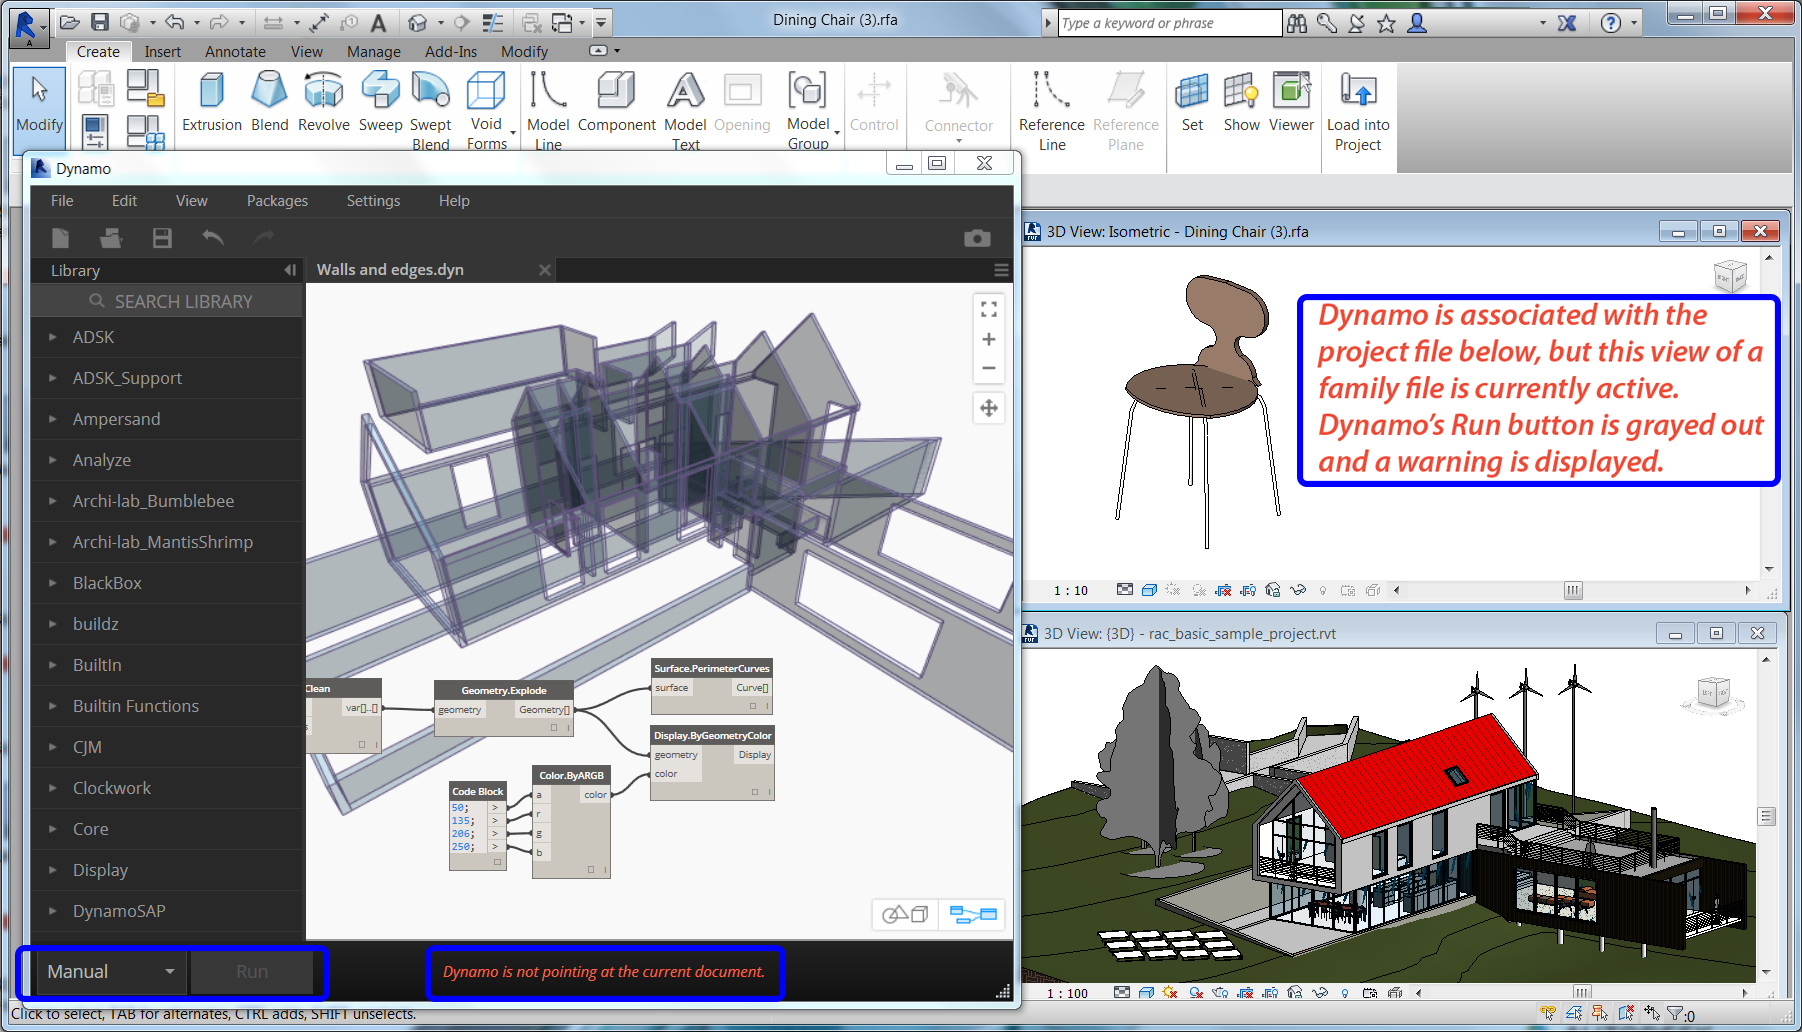 Working with Revit | Dynamo BIM